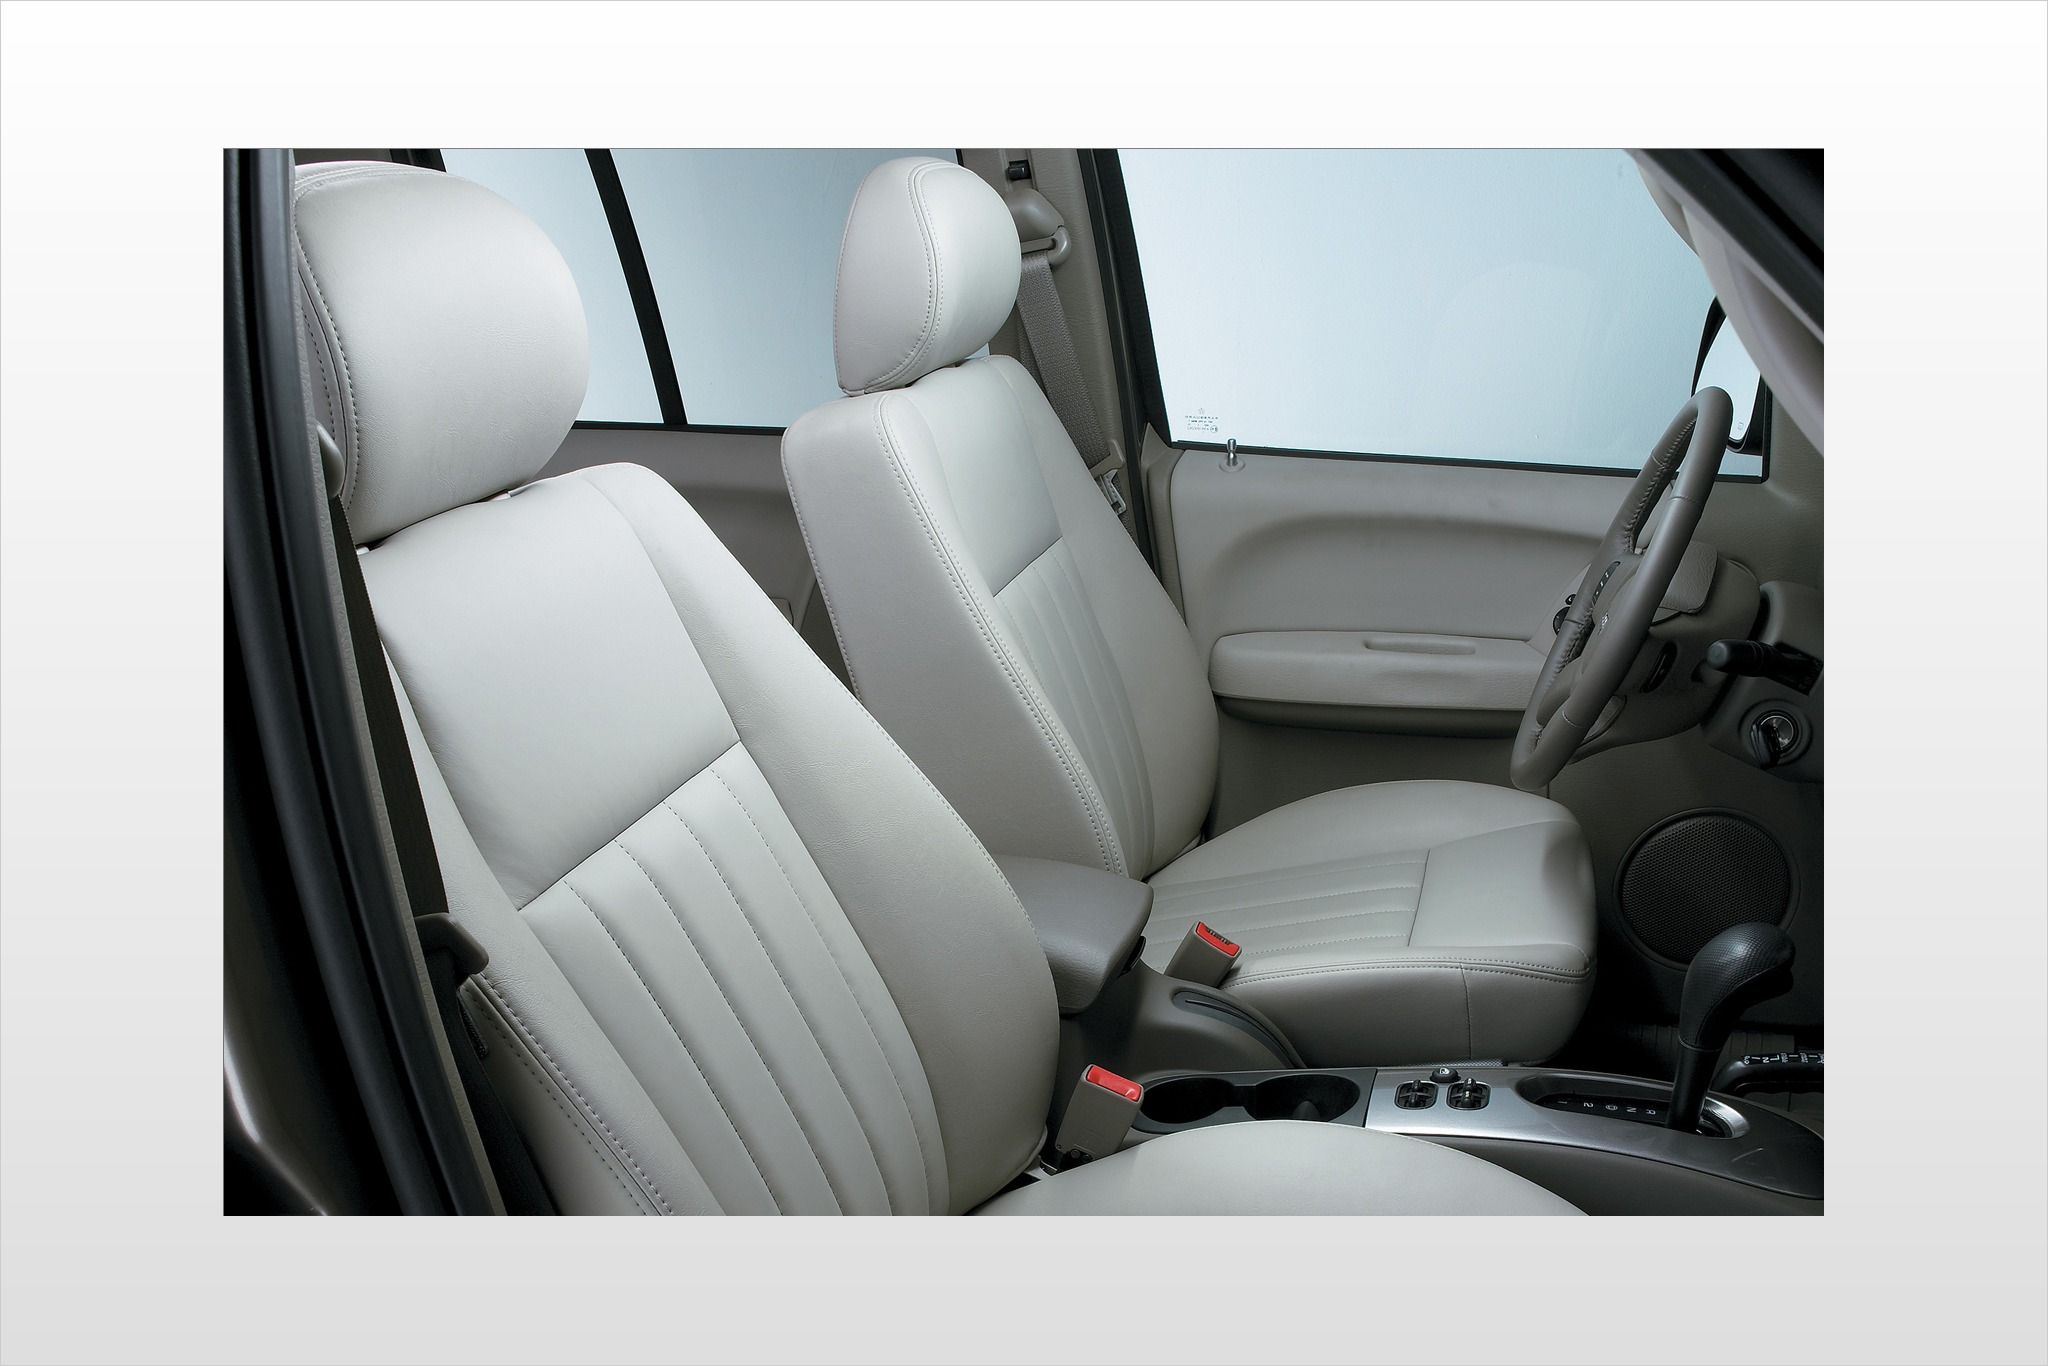 2007 Jeep Liberty Limited interior #7